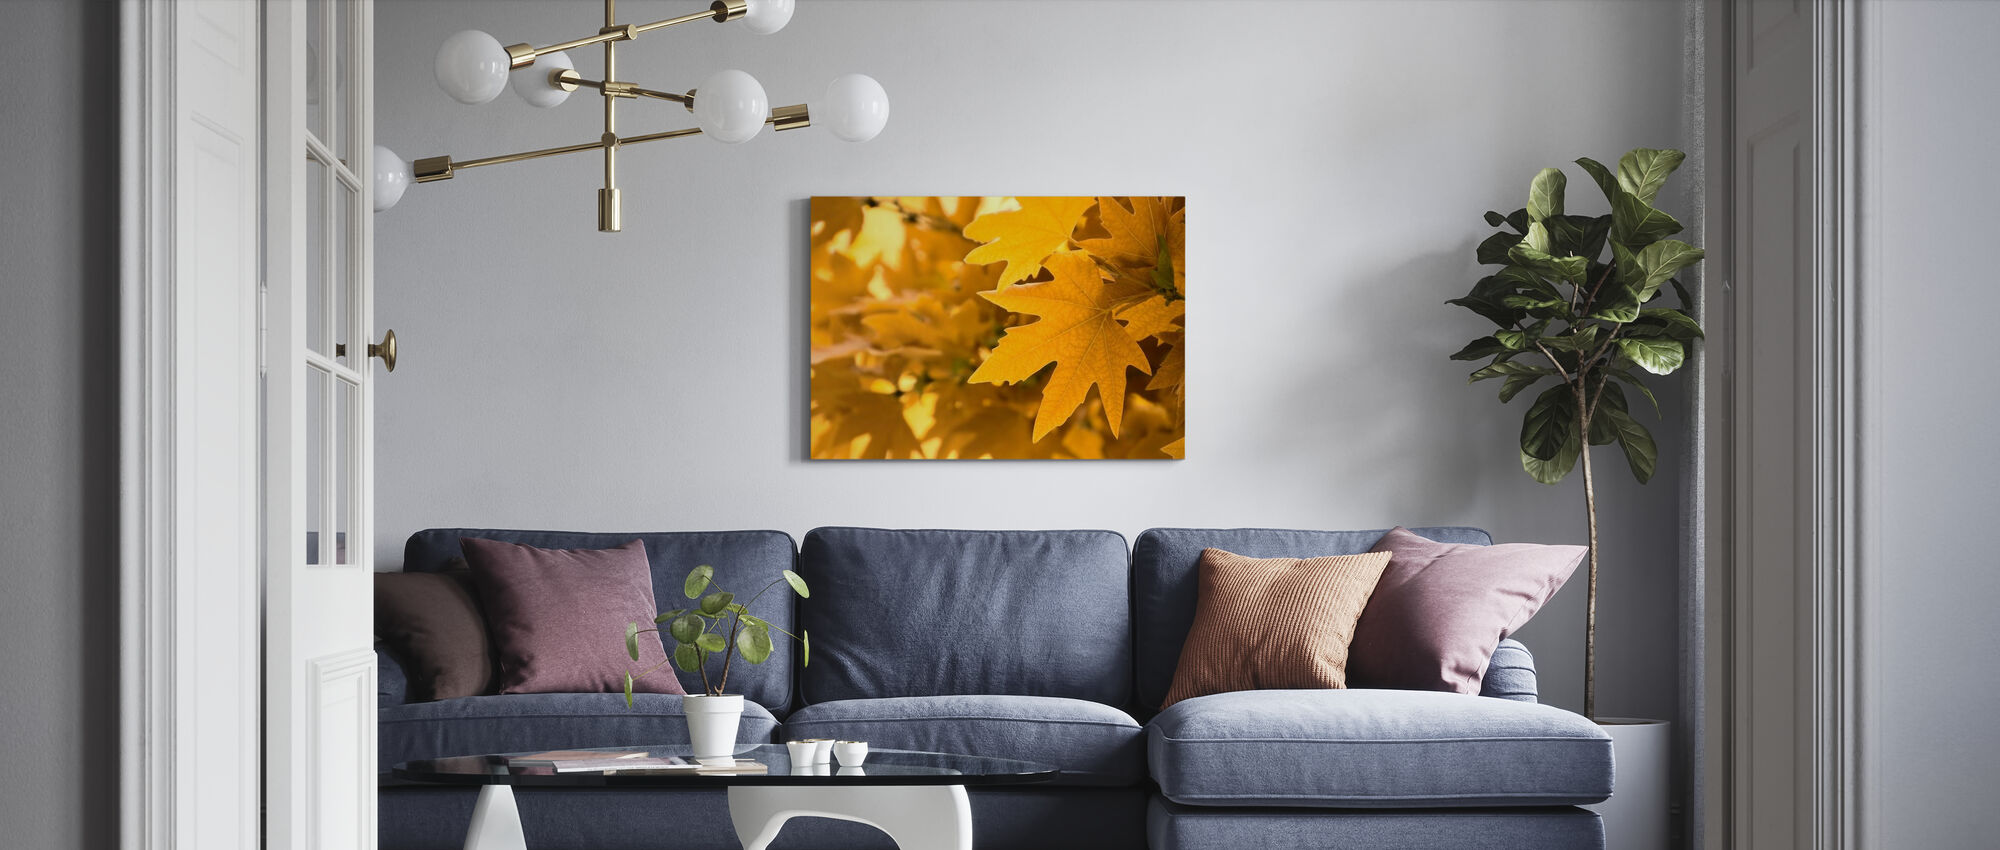 Yellow Leaves - Canvas print - Living Room